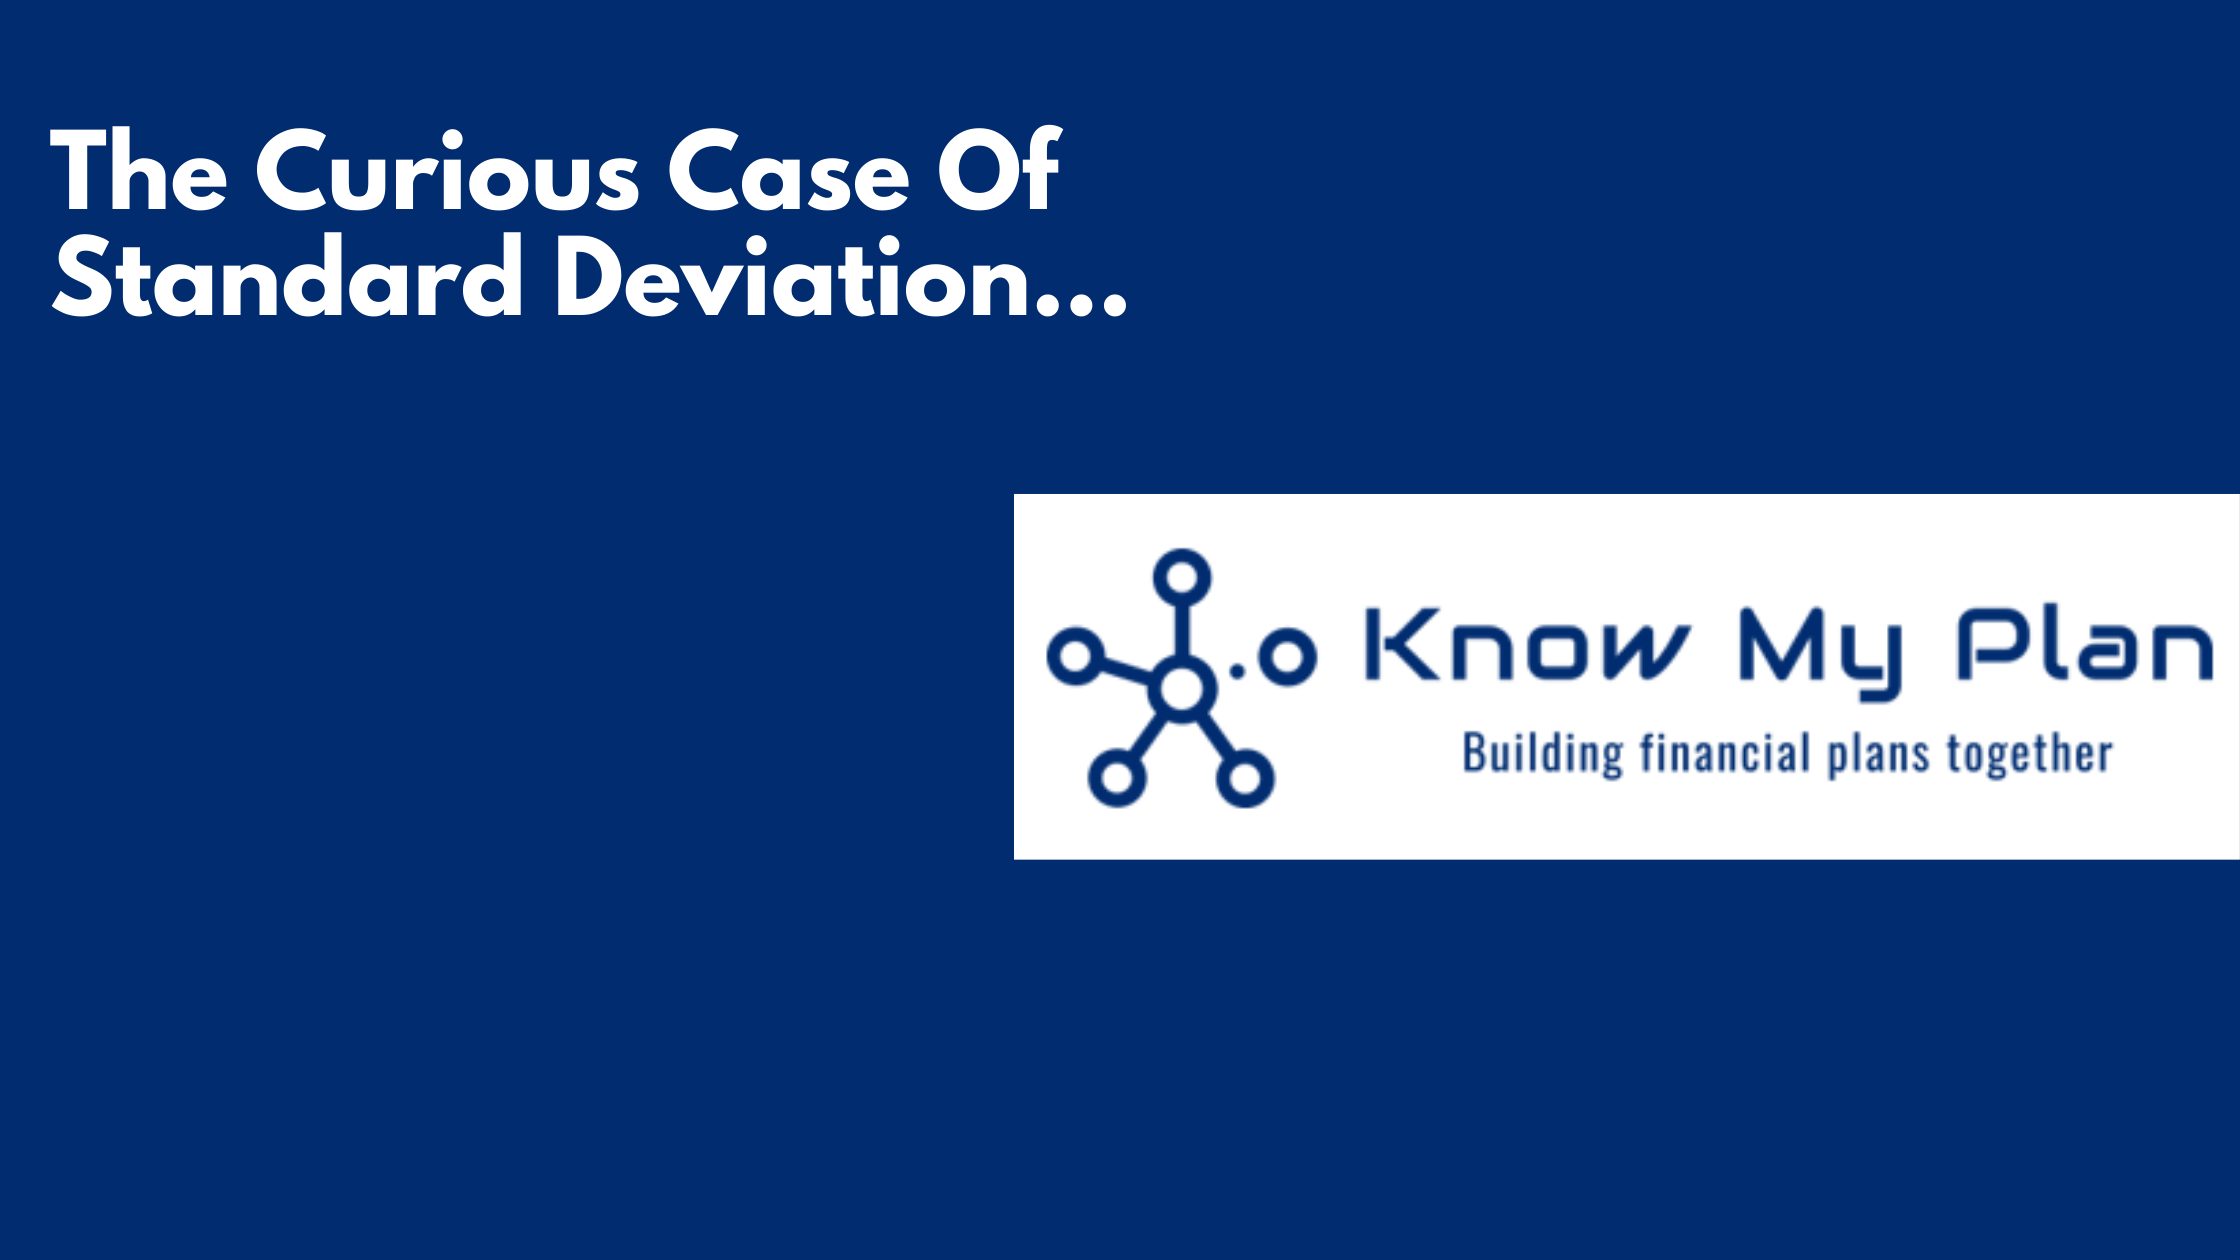 The Curious Case Of Standard Deviation